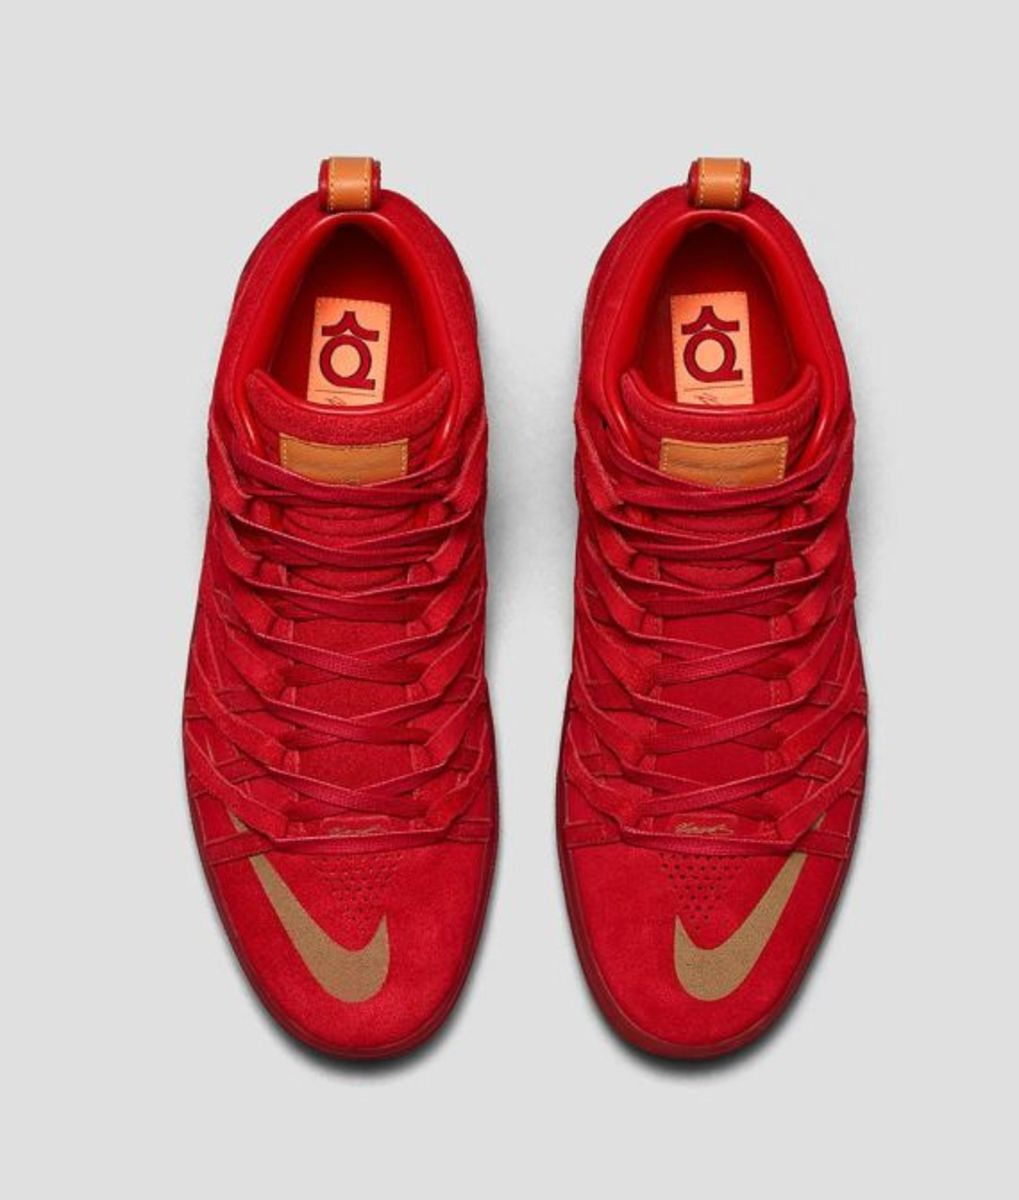 nike-kd-7-lifestyle-challenge-red-03